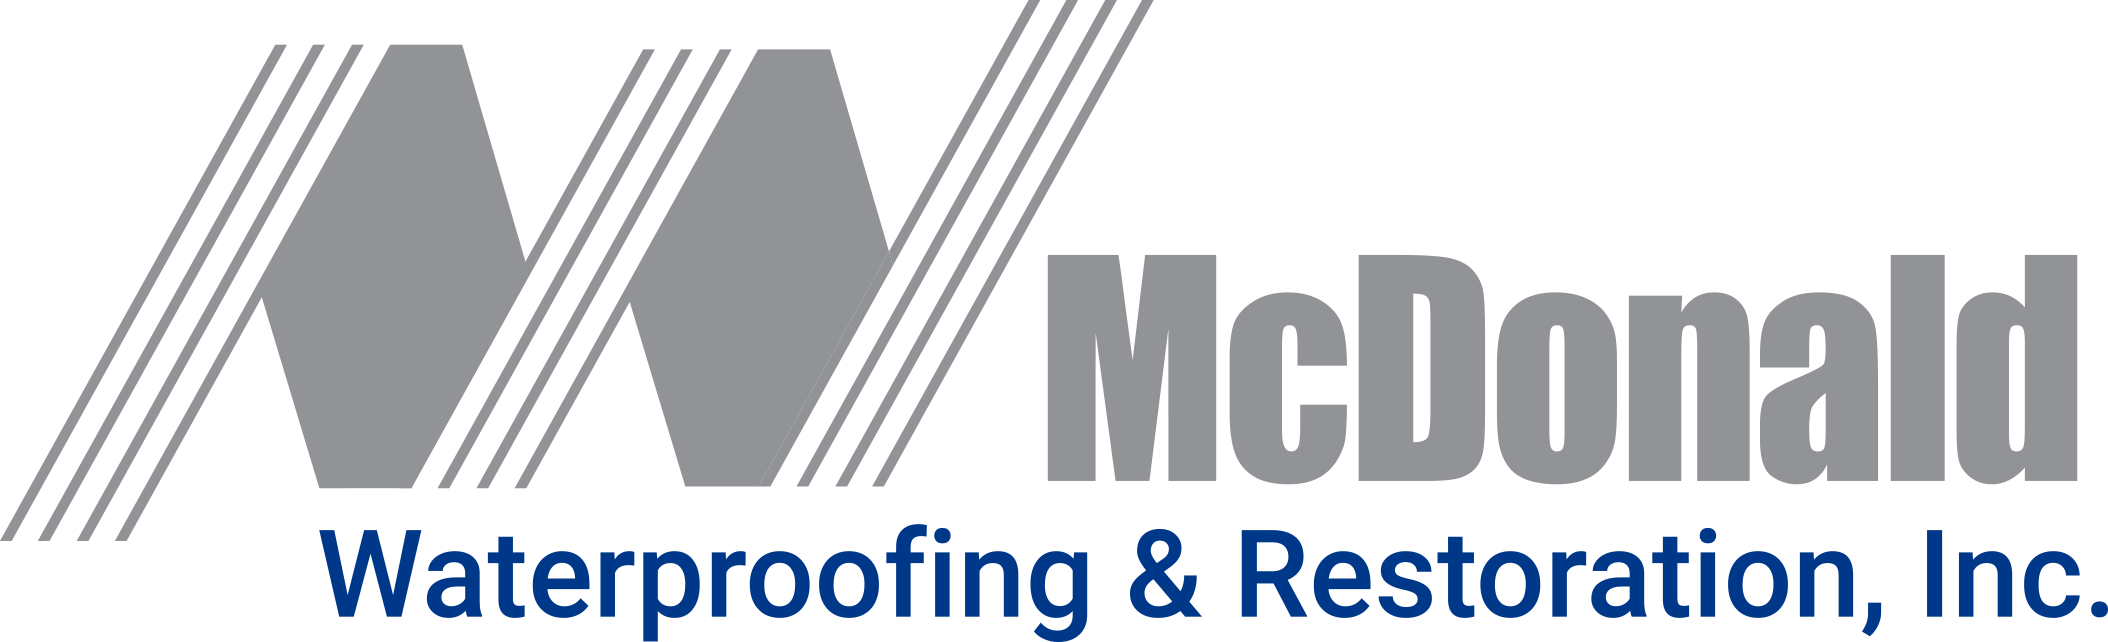 McDonald Waterproofing & Restoration